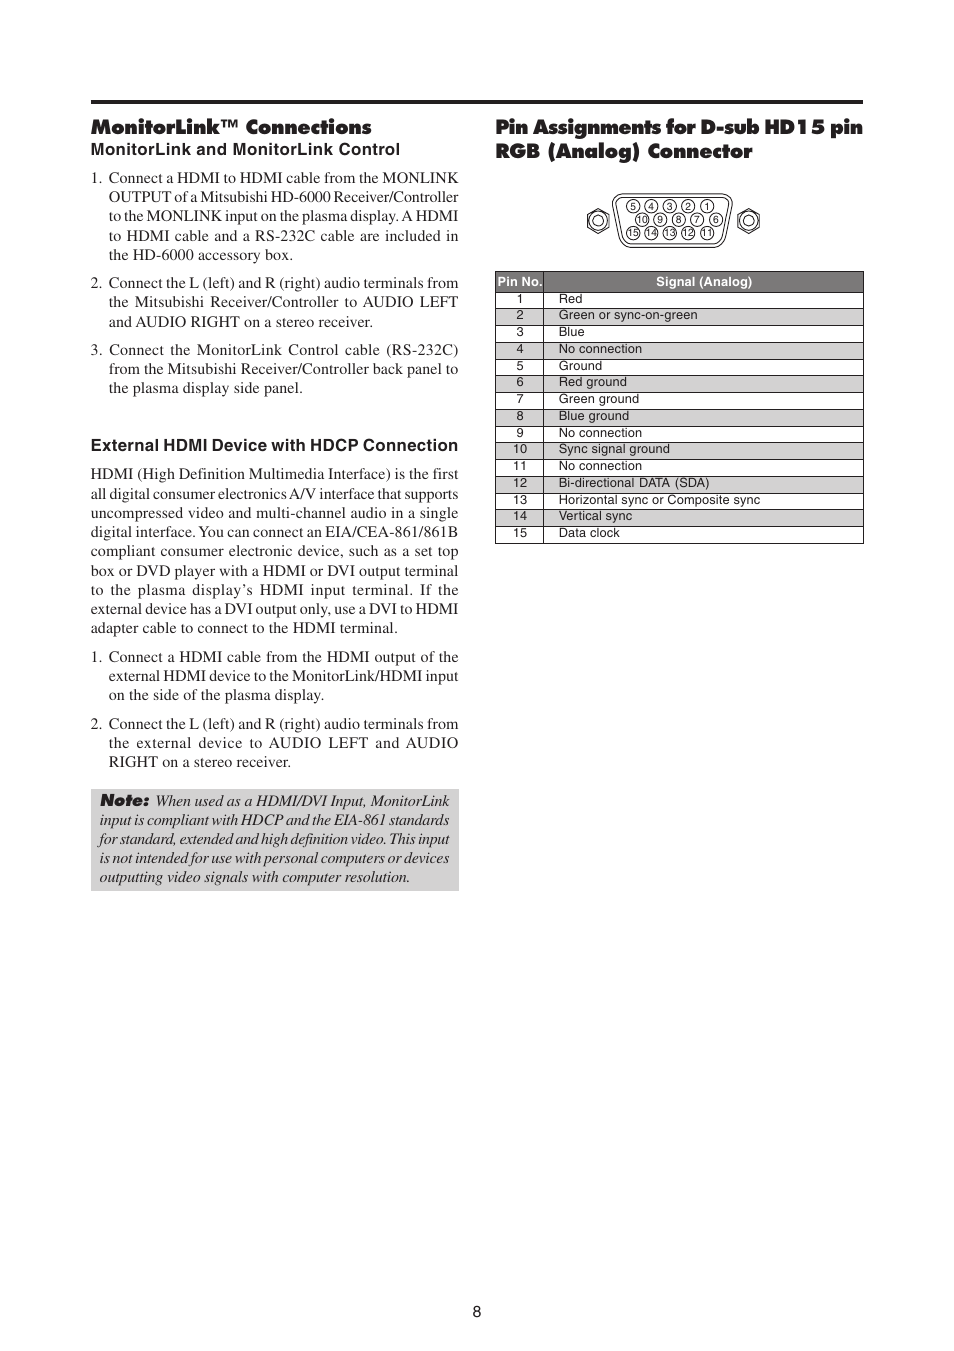 hight resolution of monitorlink connections mitsubishi electric pd 4265 user manual page 17 49